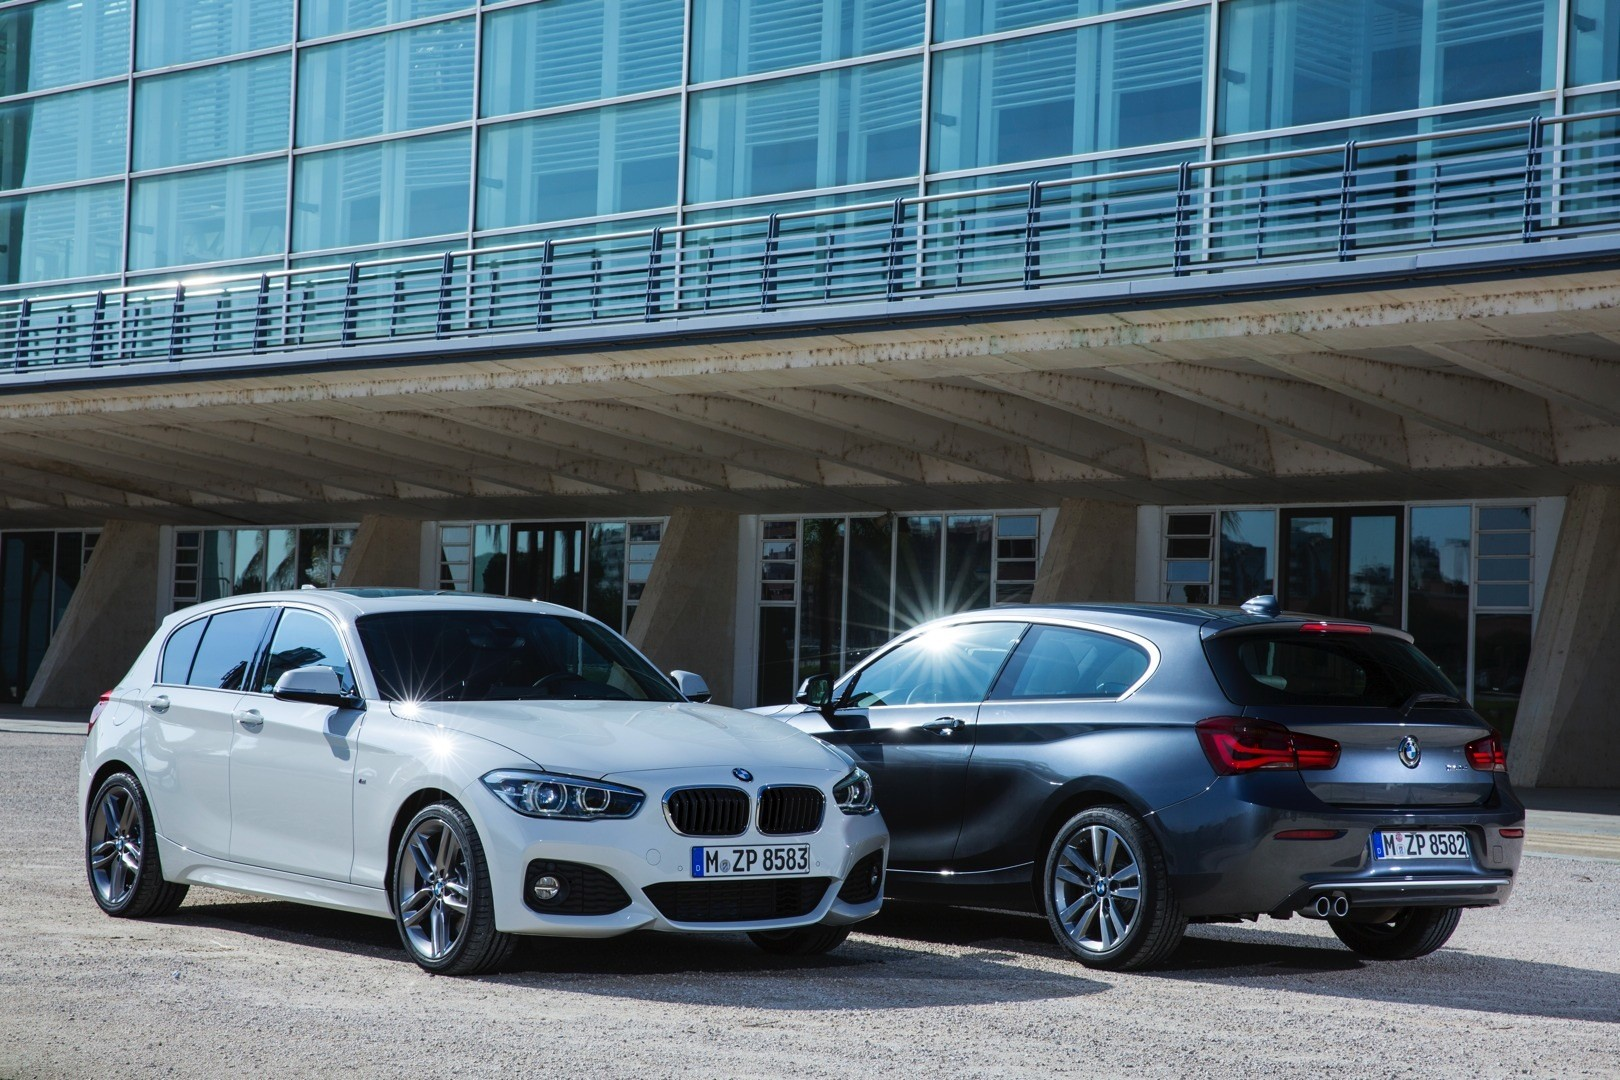 2015 BMW 1 Series Facelift Revealed with New Design and More